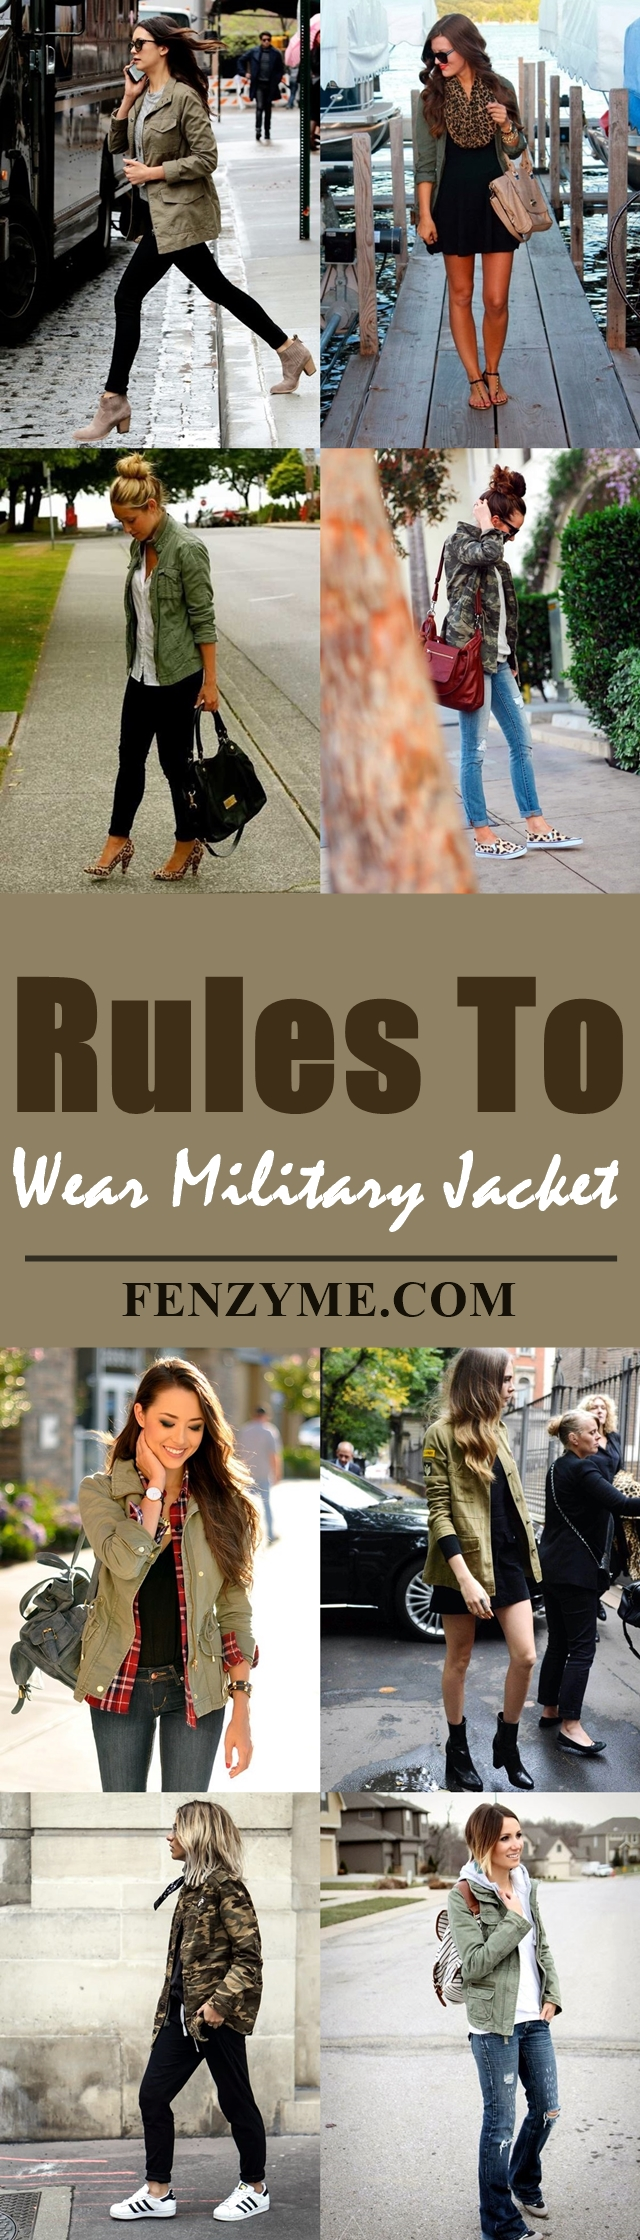 rules-to-wear-military-jacket-2-tile